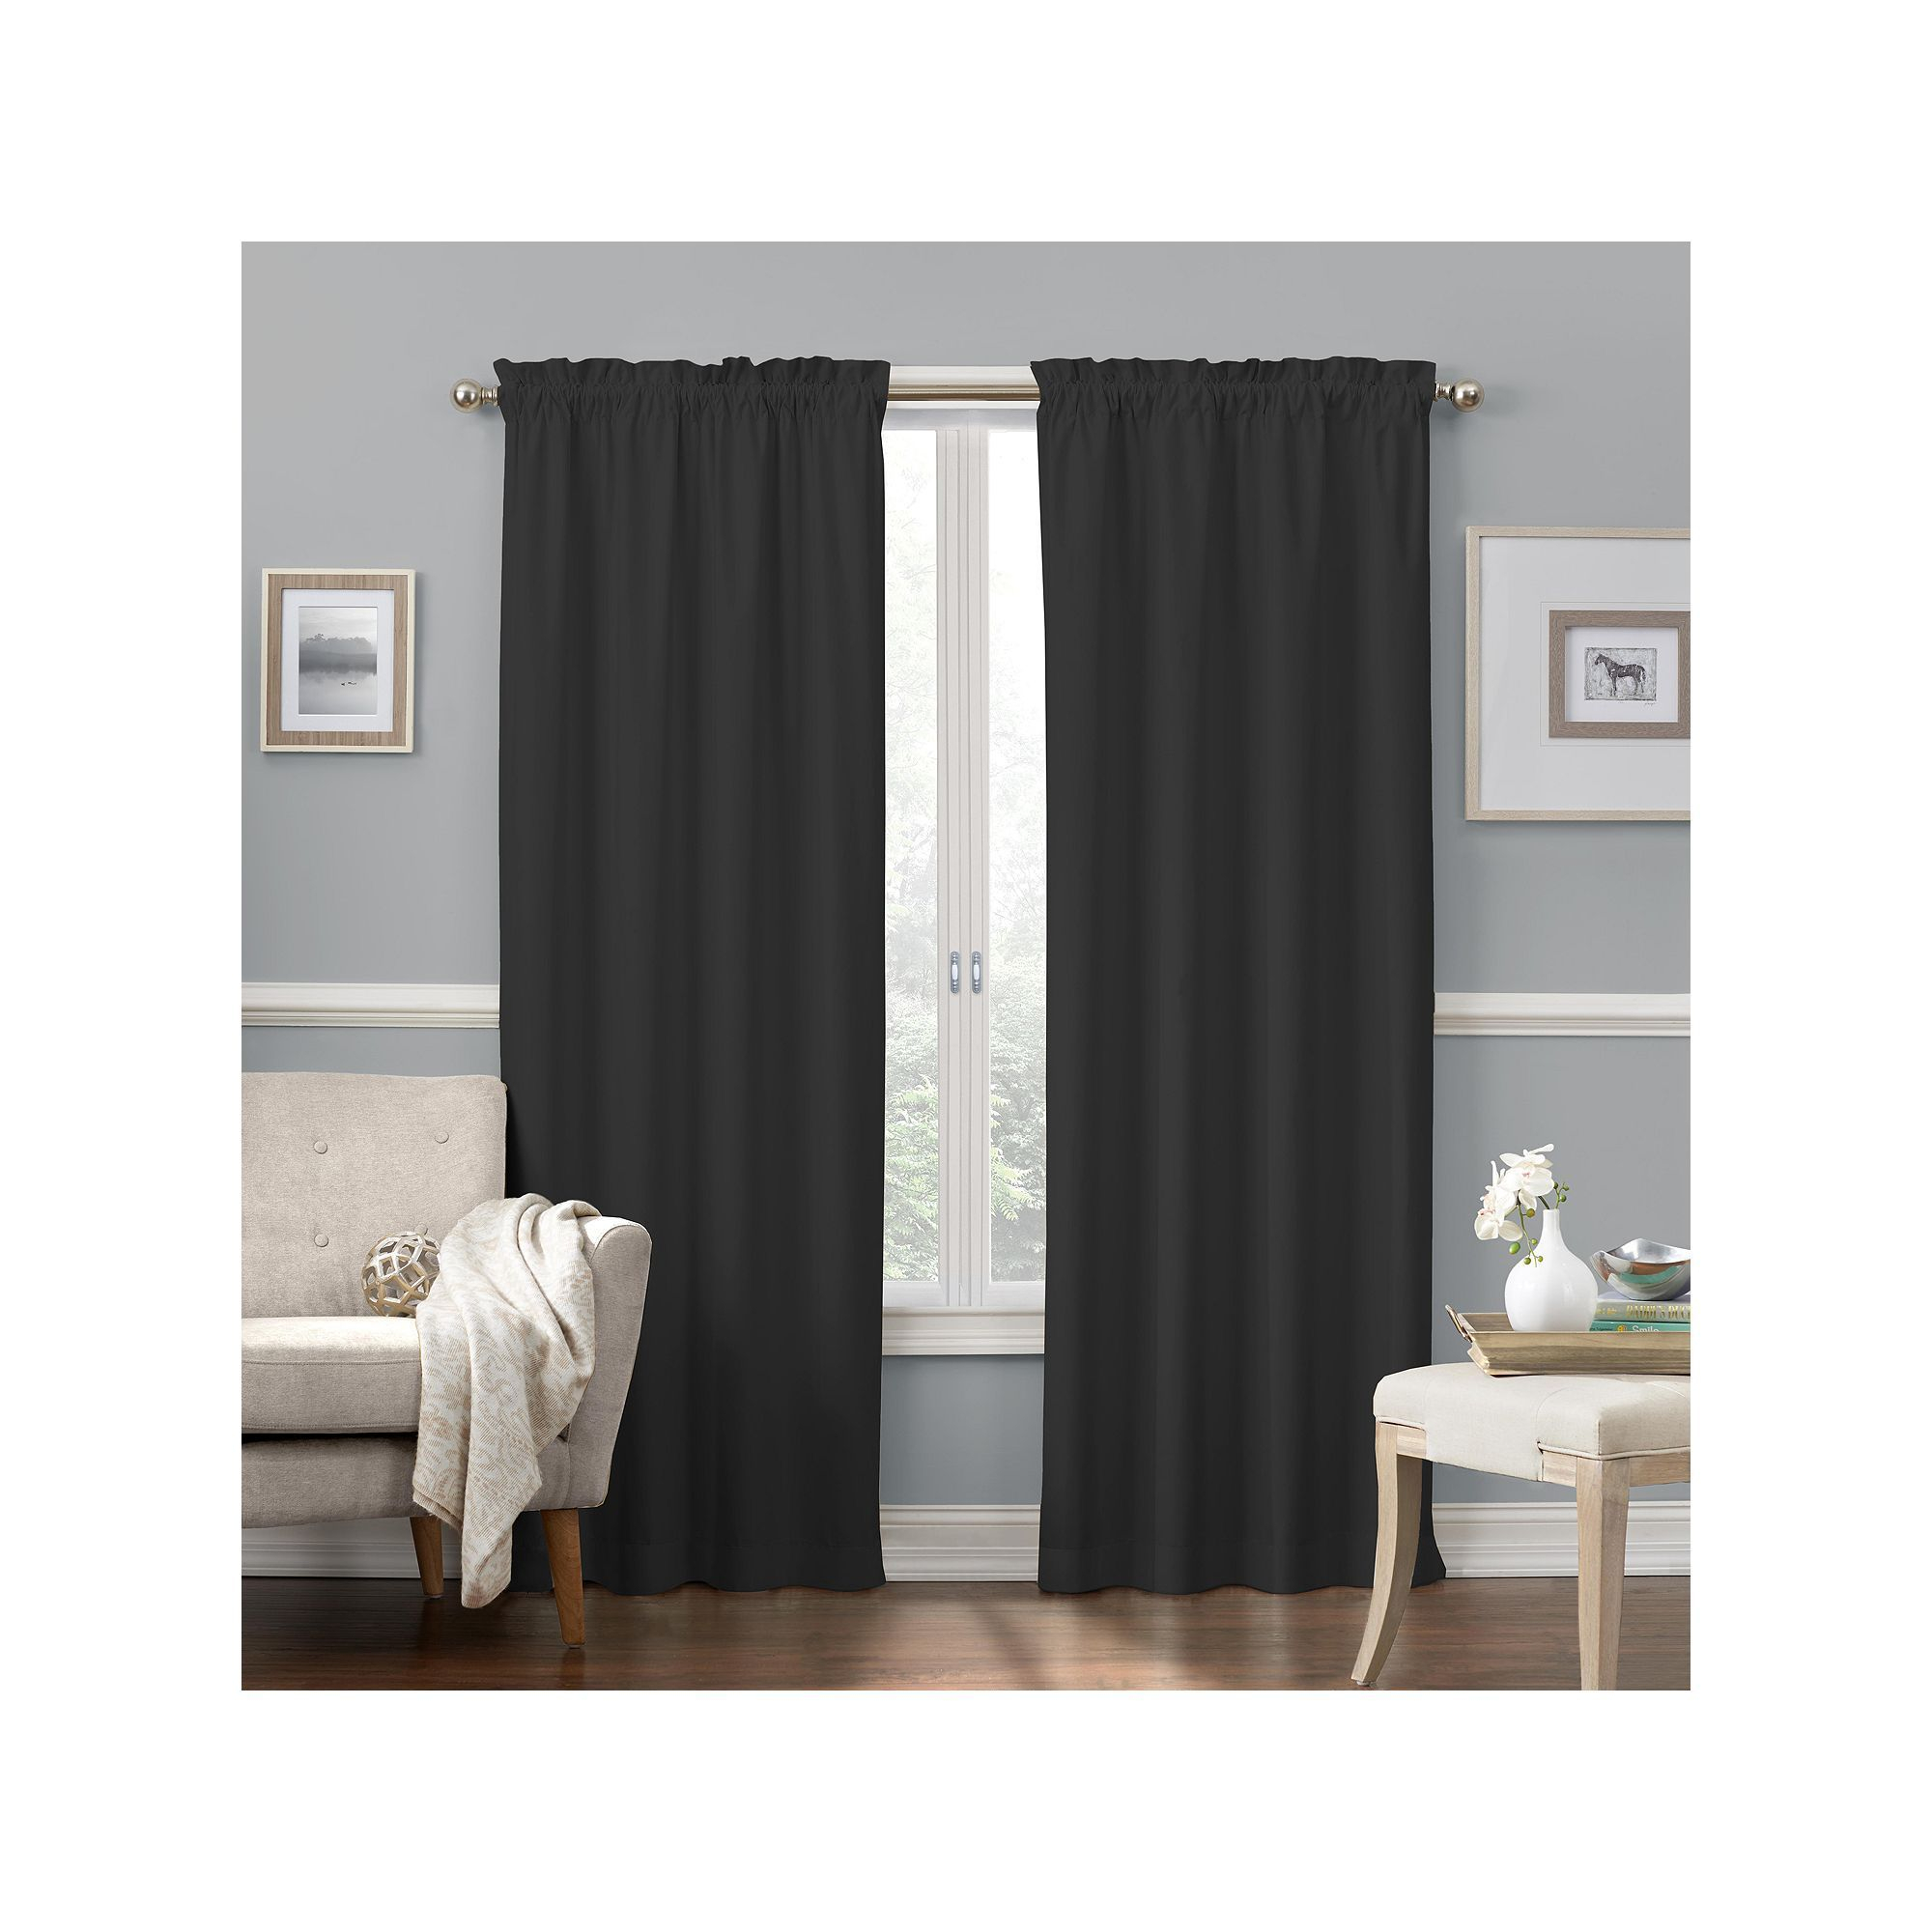 Eclipse Faux Suede Thermaback Blackout Window Curtain For Thermaback Blackout Window Curtains (View 5 of 30)